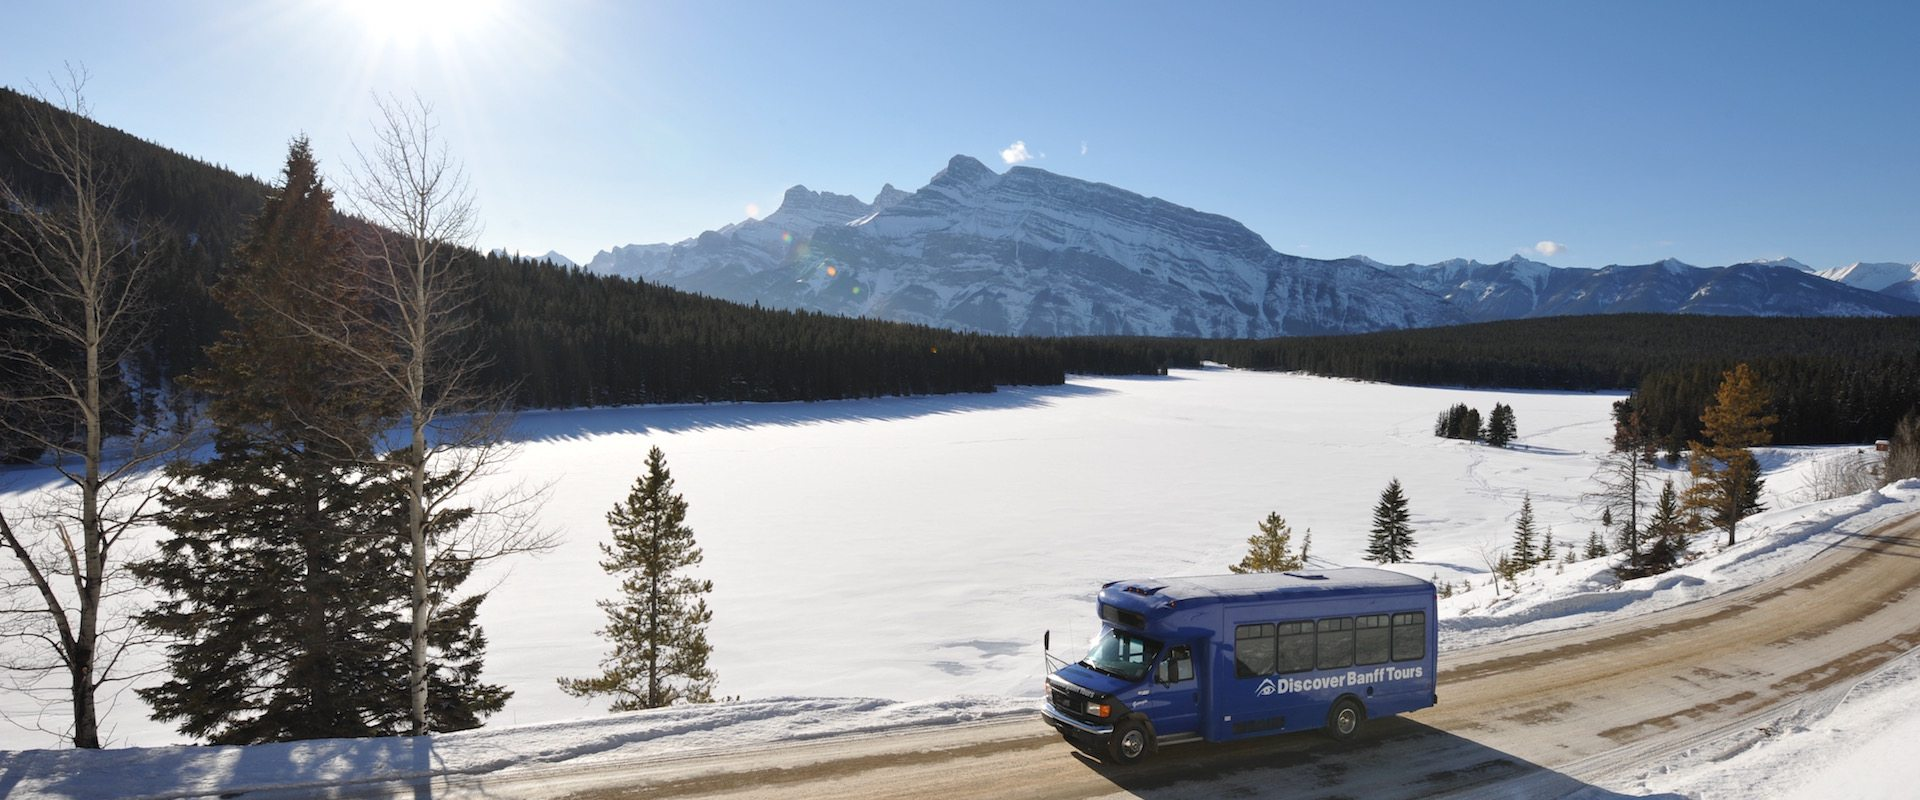 Discover Banff & Its Wildlife